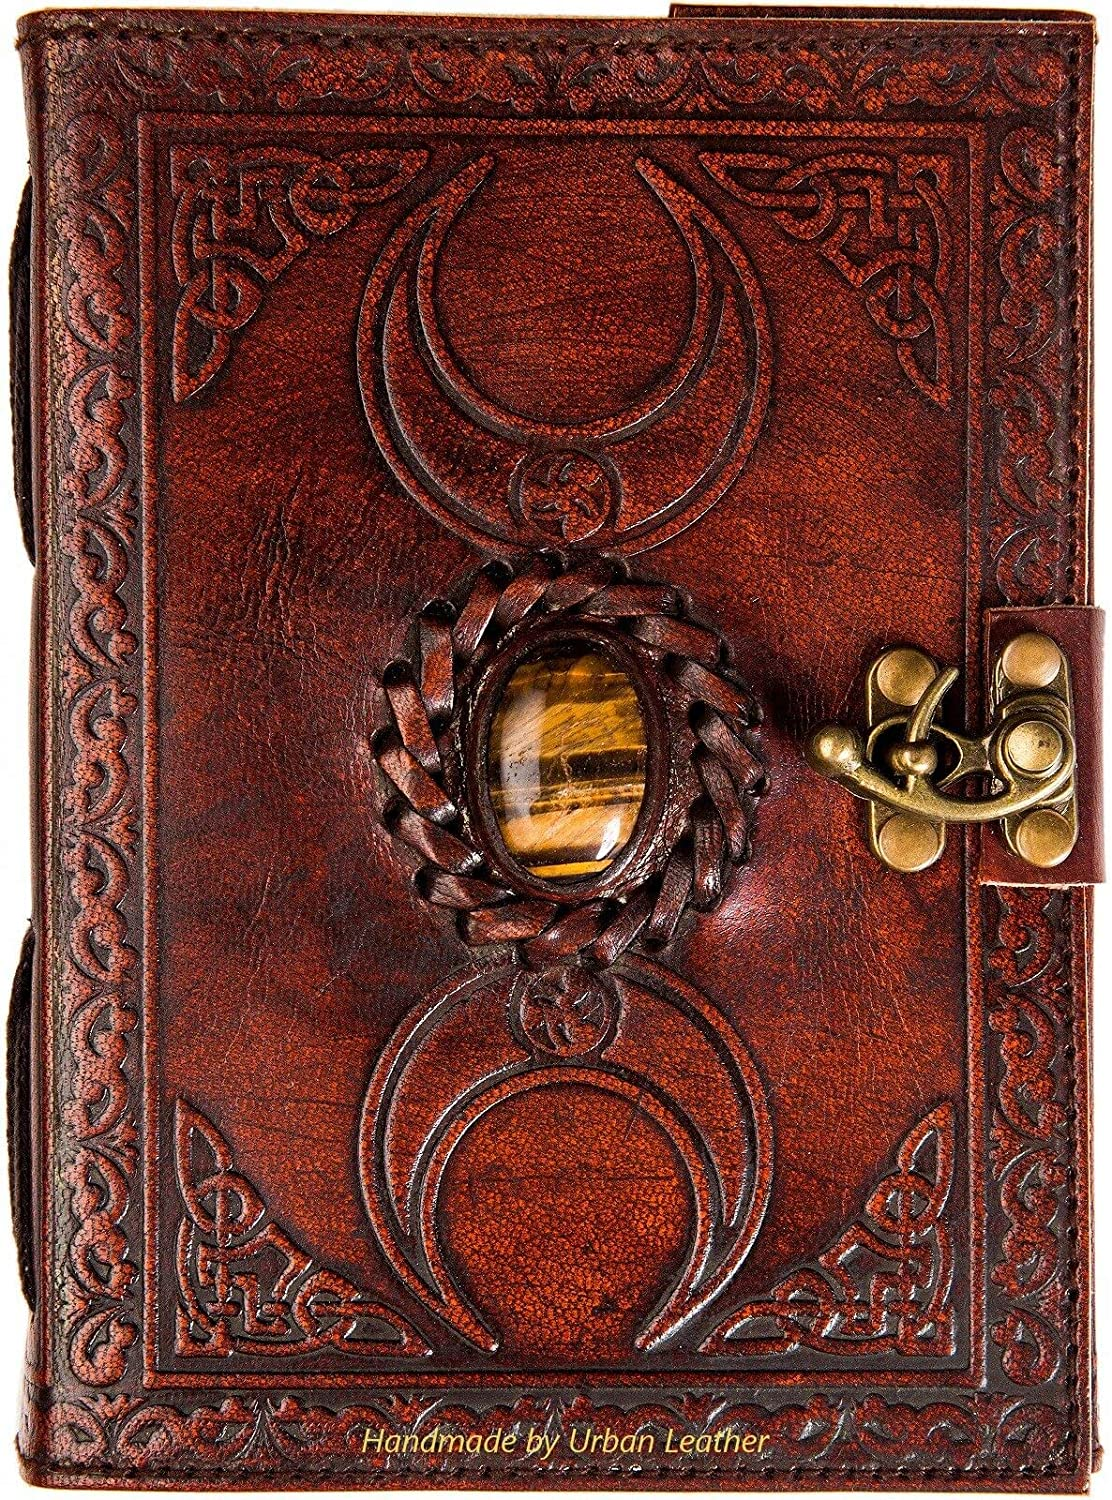 Urban Leather Book of Shadows Magic Spell Tiger Stone Studded 3 Moon Celtic Bullet Journal Daily Diary for Your Travel Stories Drawing Sketchbook Scrapbook Vintage Writing Notebook- Unlined Paper